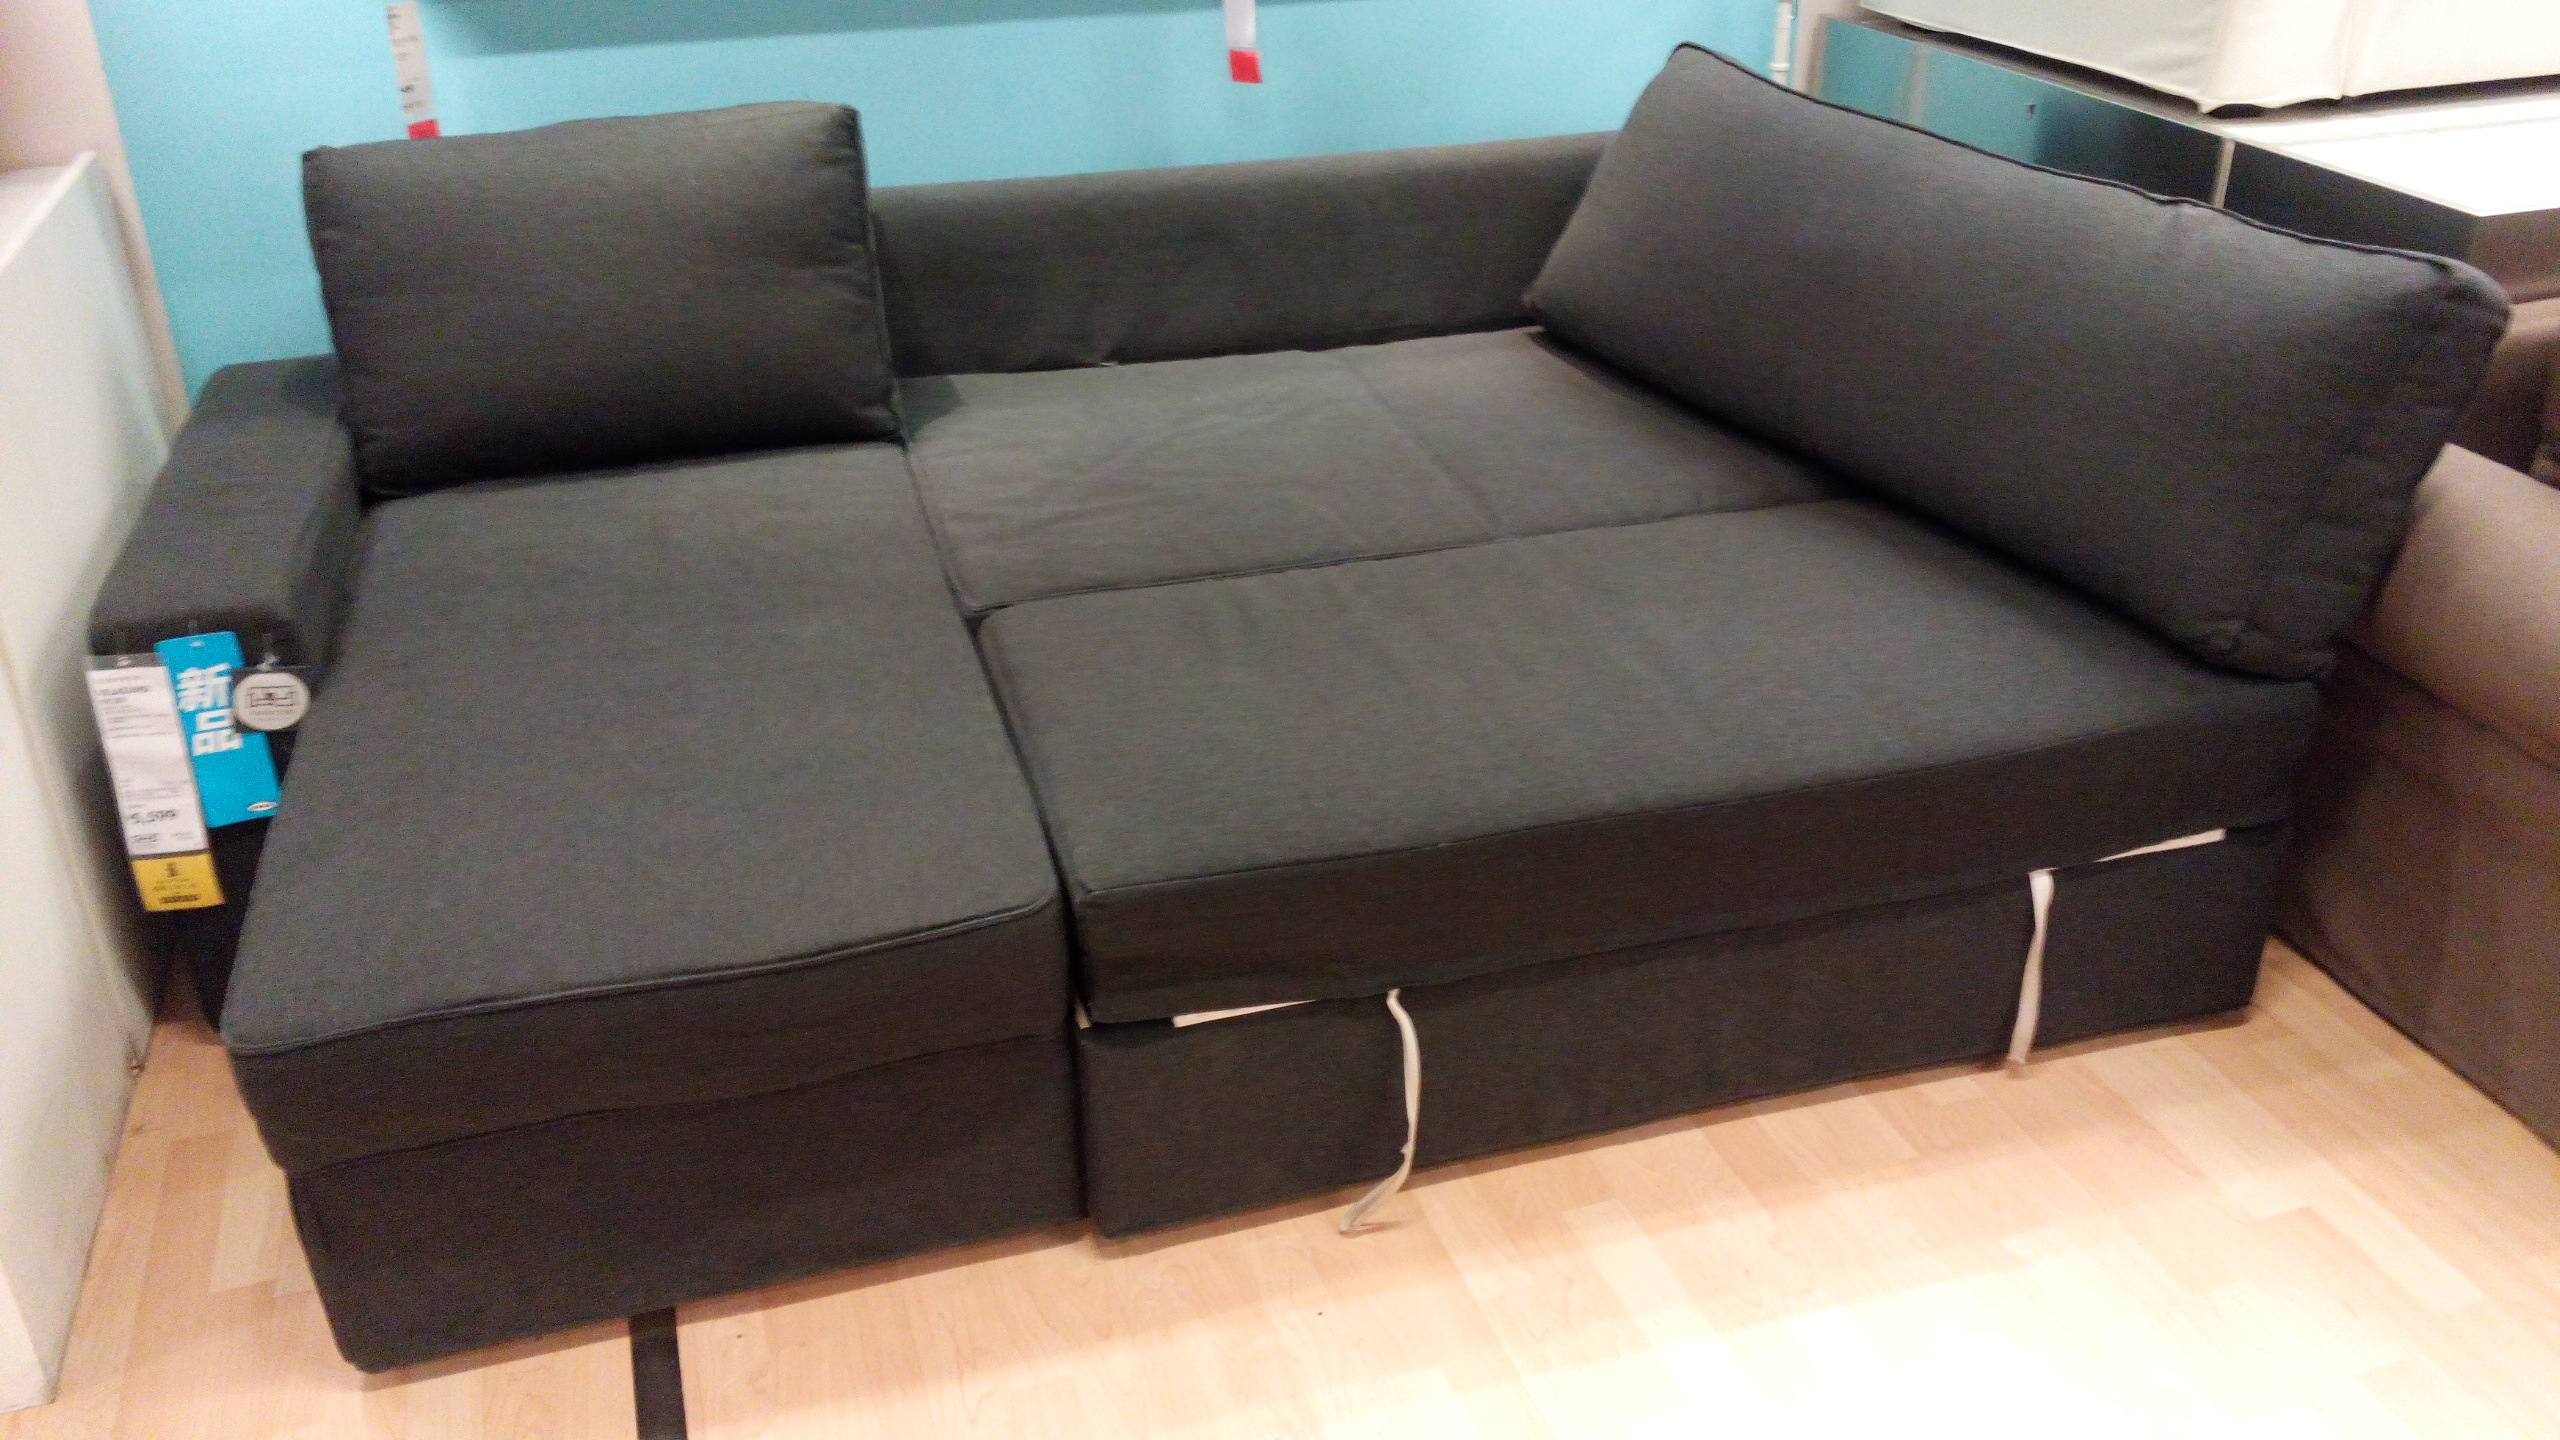 Made Sofa Reviews Top 10 Ikea Sofa Beds Reviewed Jan 2019 Sleep Good Tonight